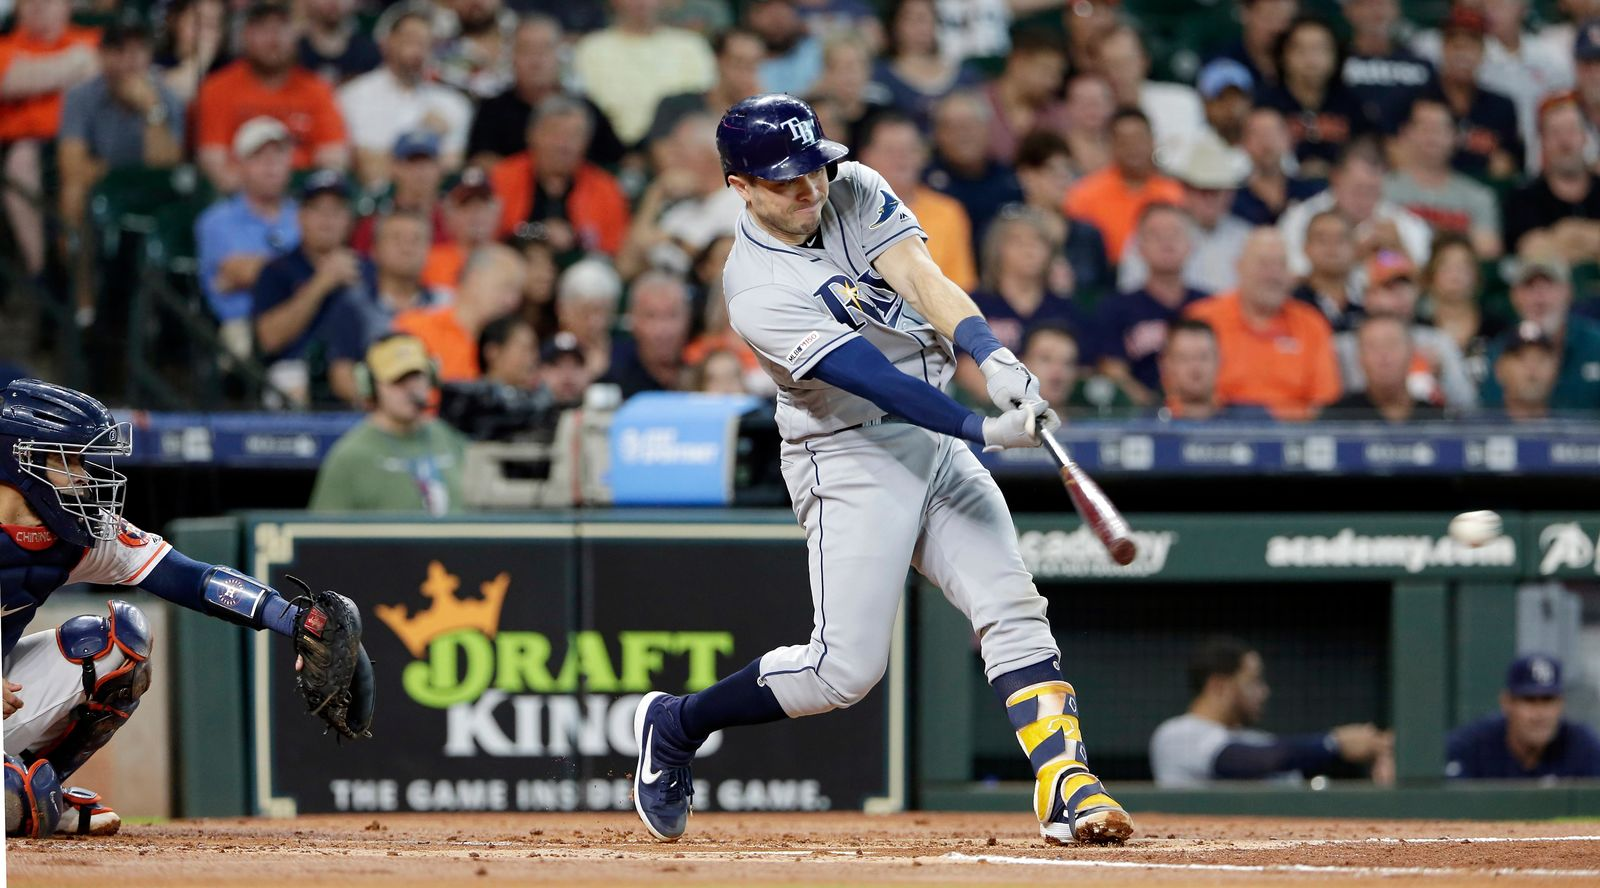 Tampa Bay Rays' Travis d'Arnaud connects for a single RBI hit in front of Houston Astros catcher Robinson Chirinos during the second inning of a baseball game Thursday, Aug. 29, 2019, in Houston. (AP Photo/Michael Wyke)